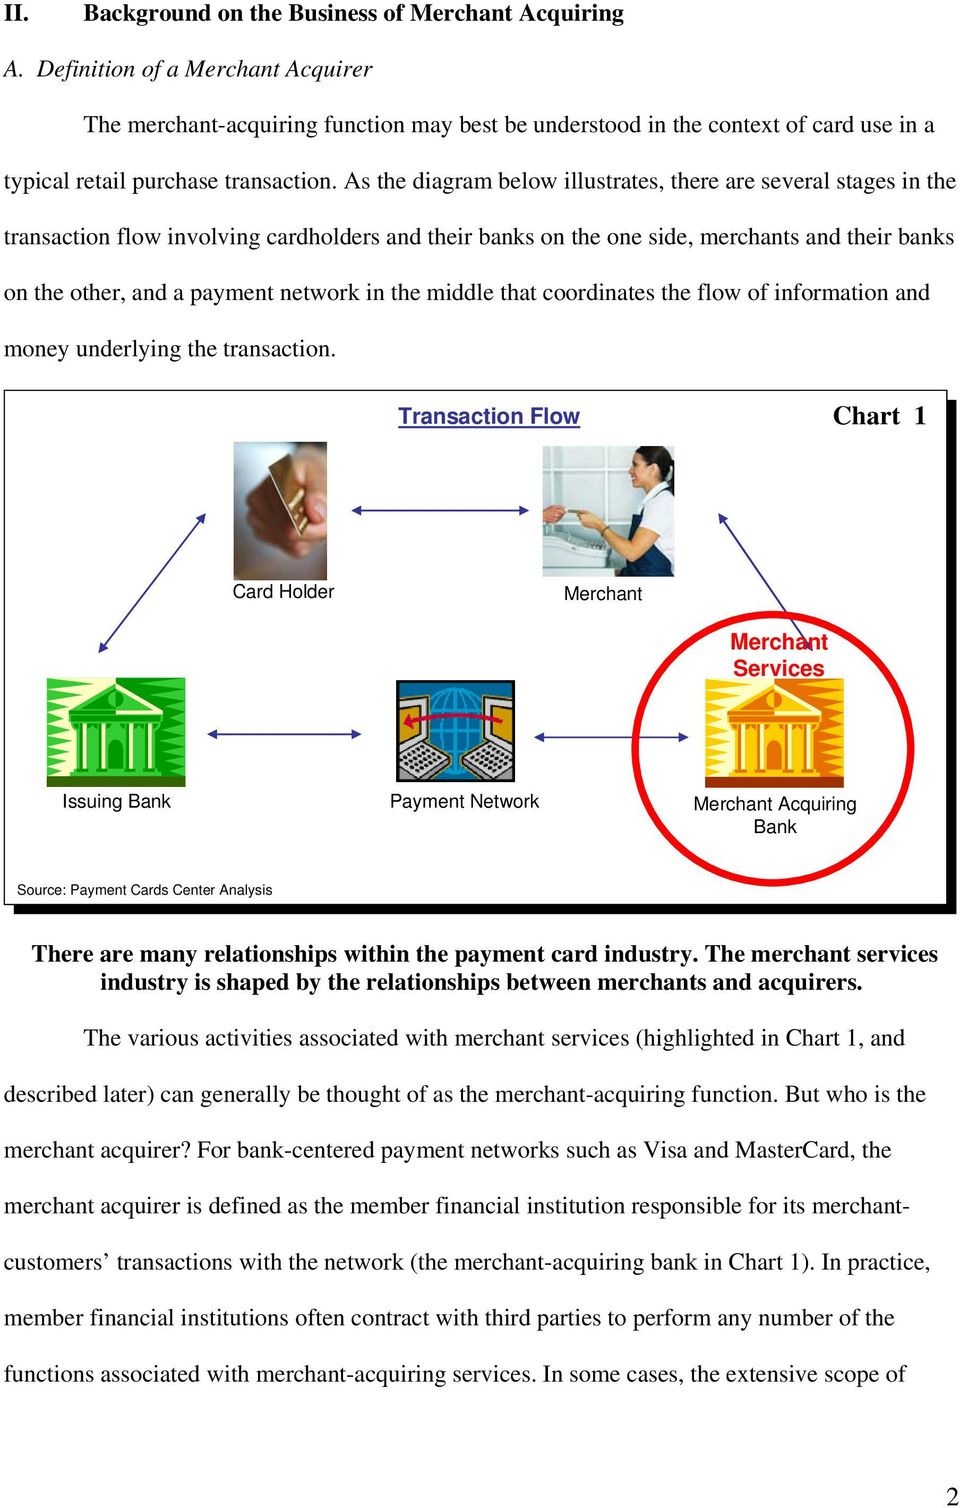 As the diagram below illustrates, there are several stages in the transaction flow involving cardholders and their banks on the one side, merchants and their banks on the other, and a payment network